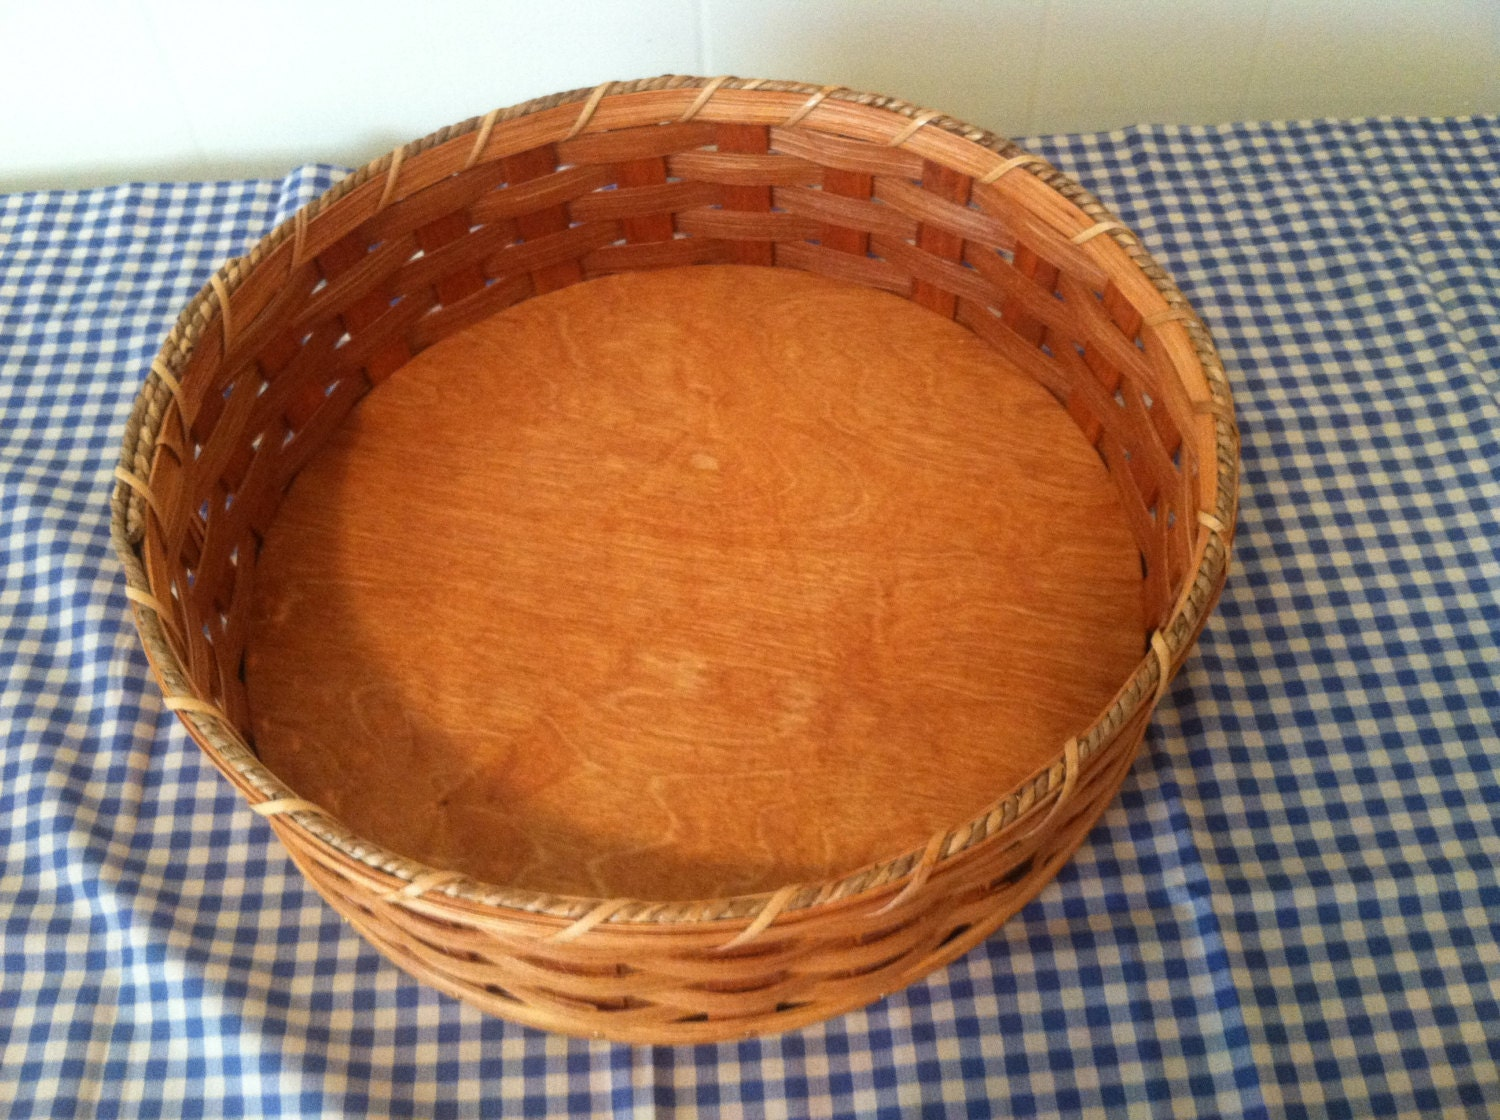 How To Weave A Basket Out Of Reeds : Handmade amish reed woven large round by amishhiddentreasures